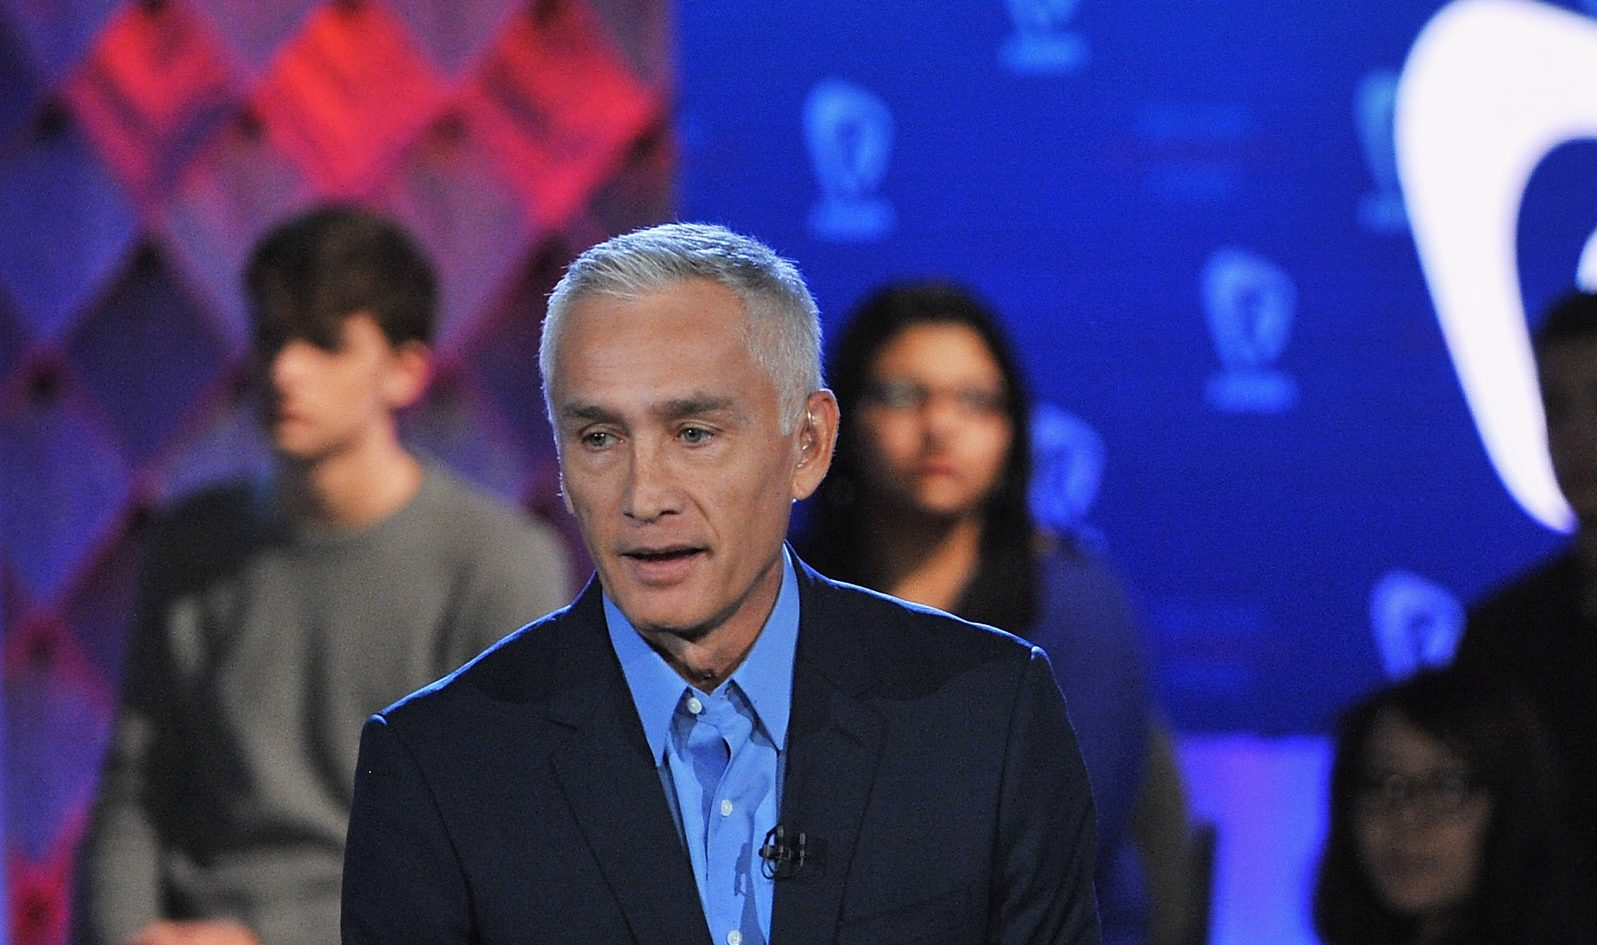 Univision Reports That Venezuelan President Nicolás Maduro Detained Jorge Ramos